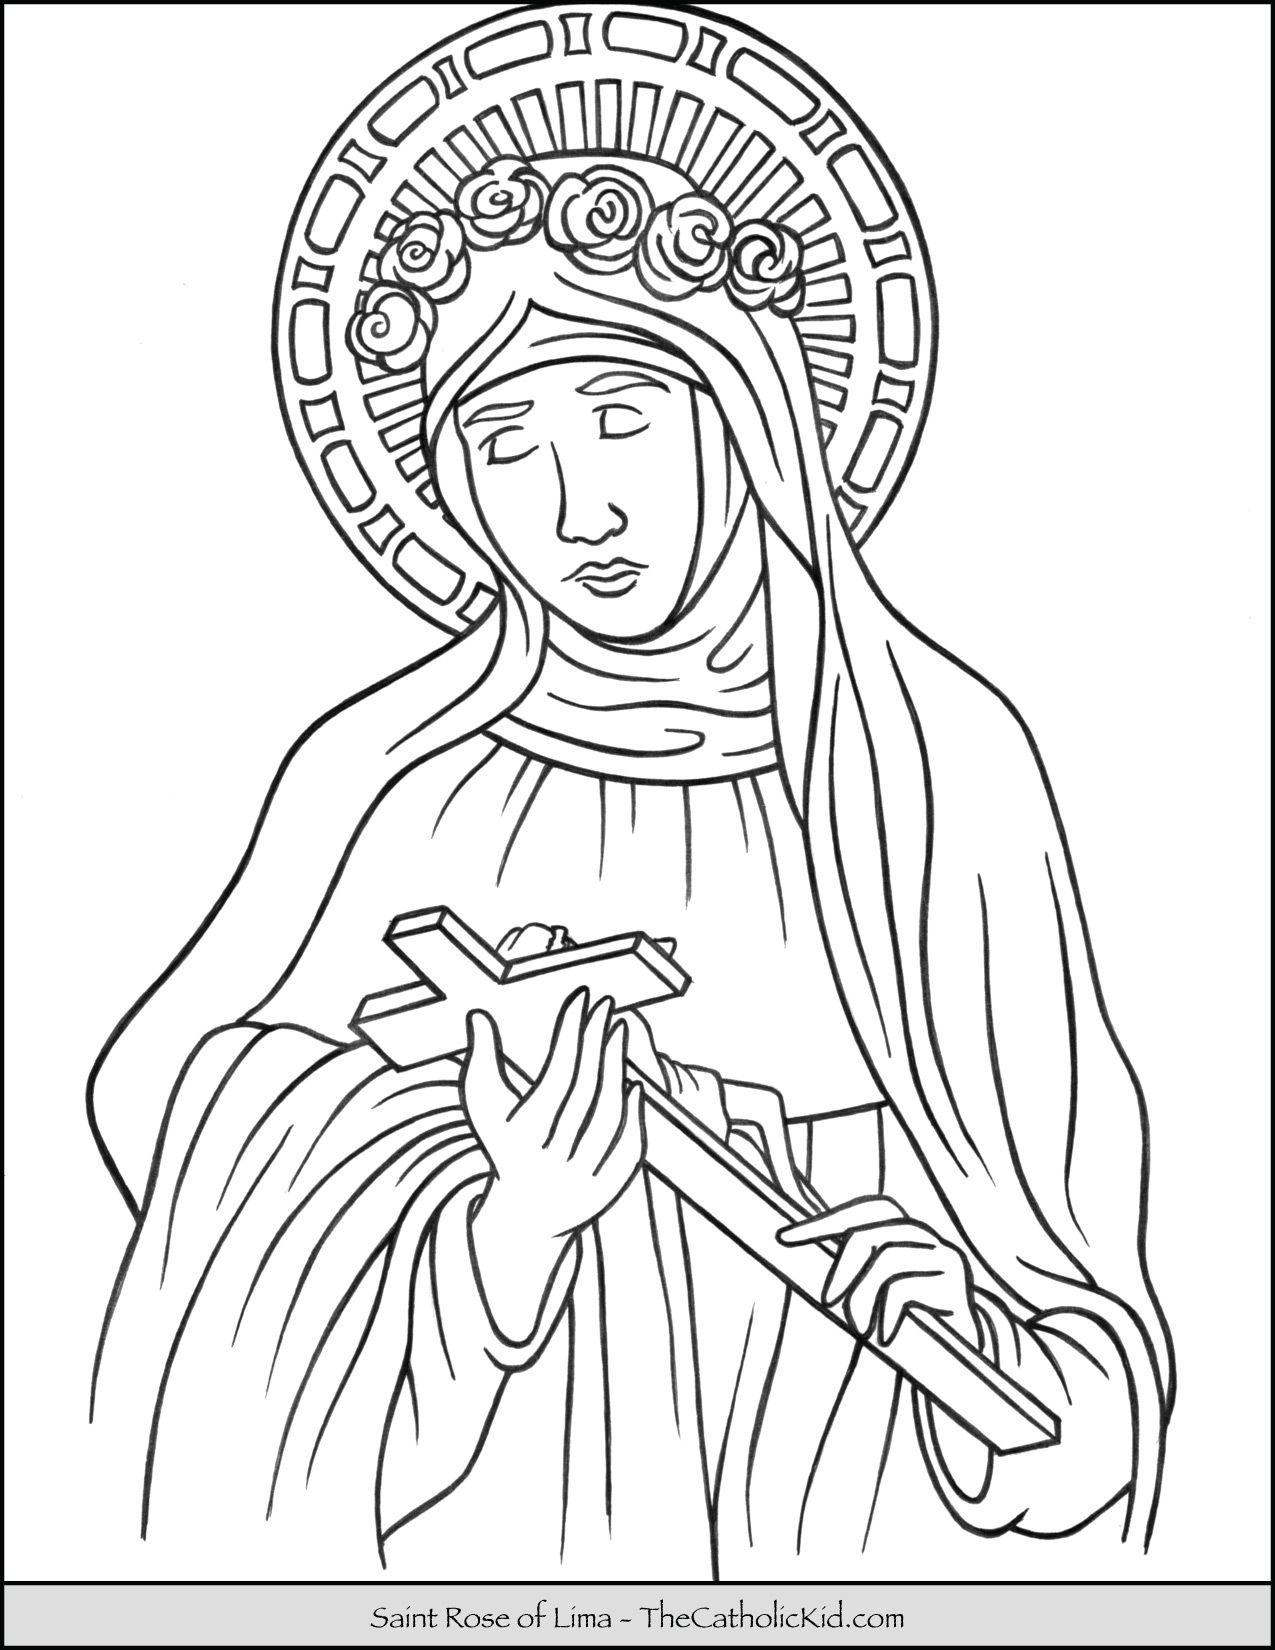 31++ St rose of lima coloring page free download